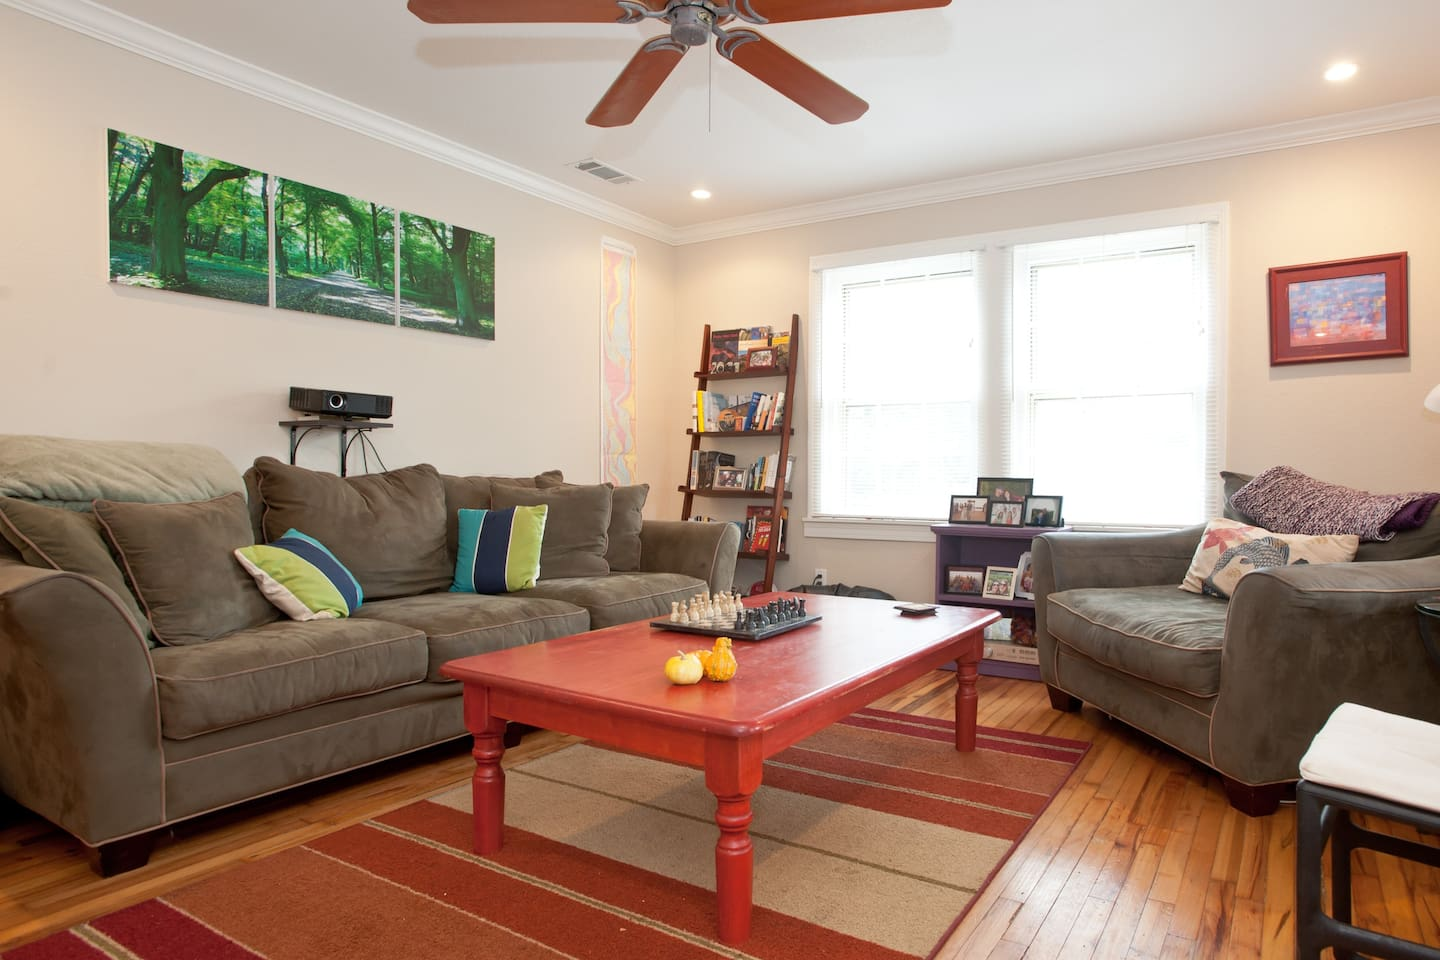 The cozy living room: feel free to read a book, play chess, watch movies on the projector or just lounge around!